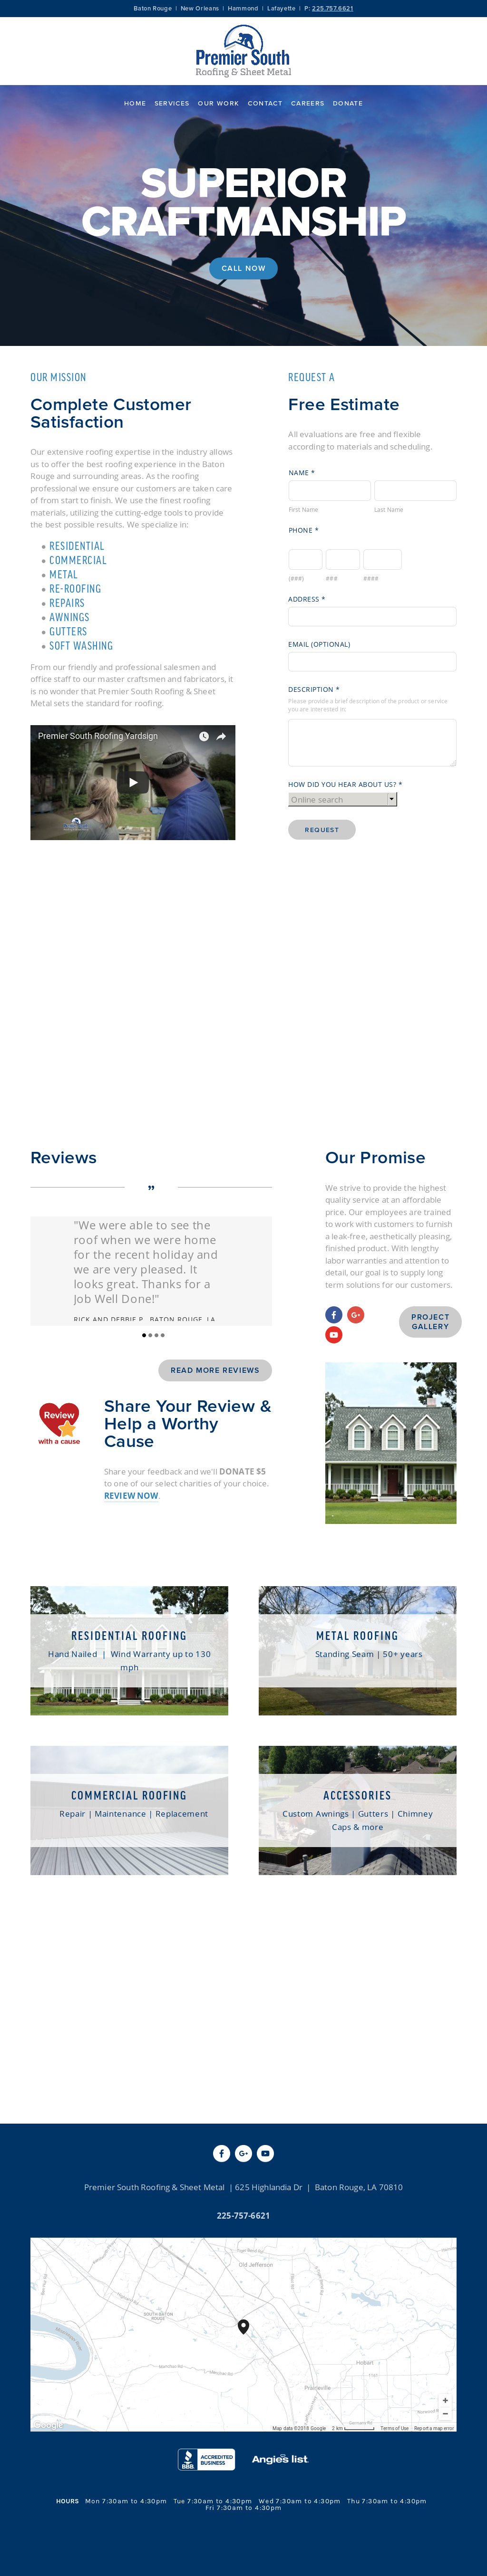 Premier South Roofing And Sheet Metal Baton Rouge New Orleans S Website Screenshot On Mar